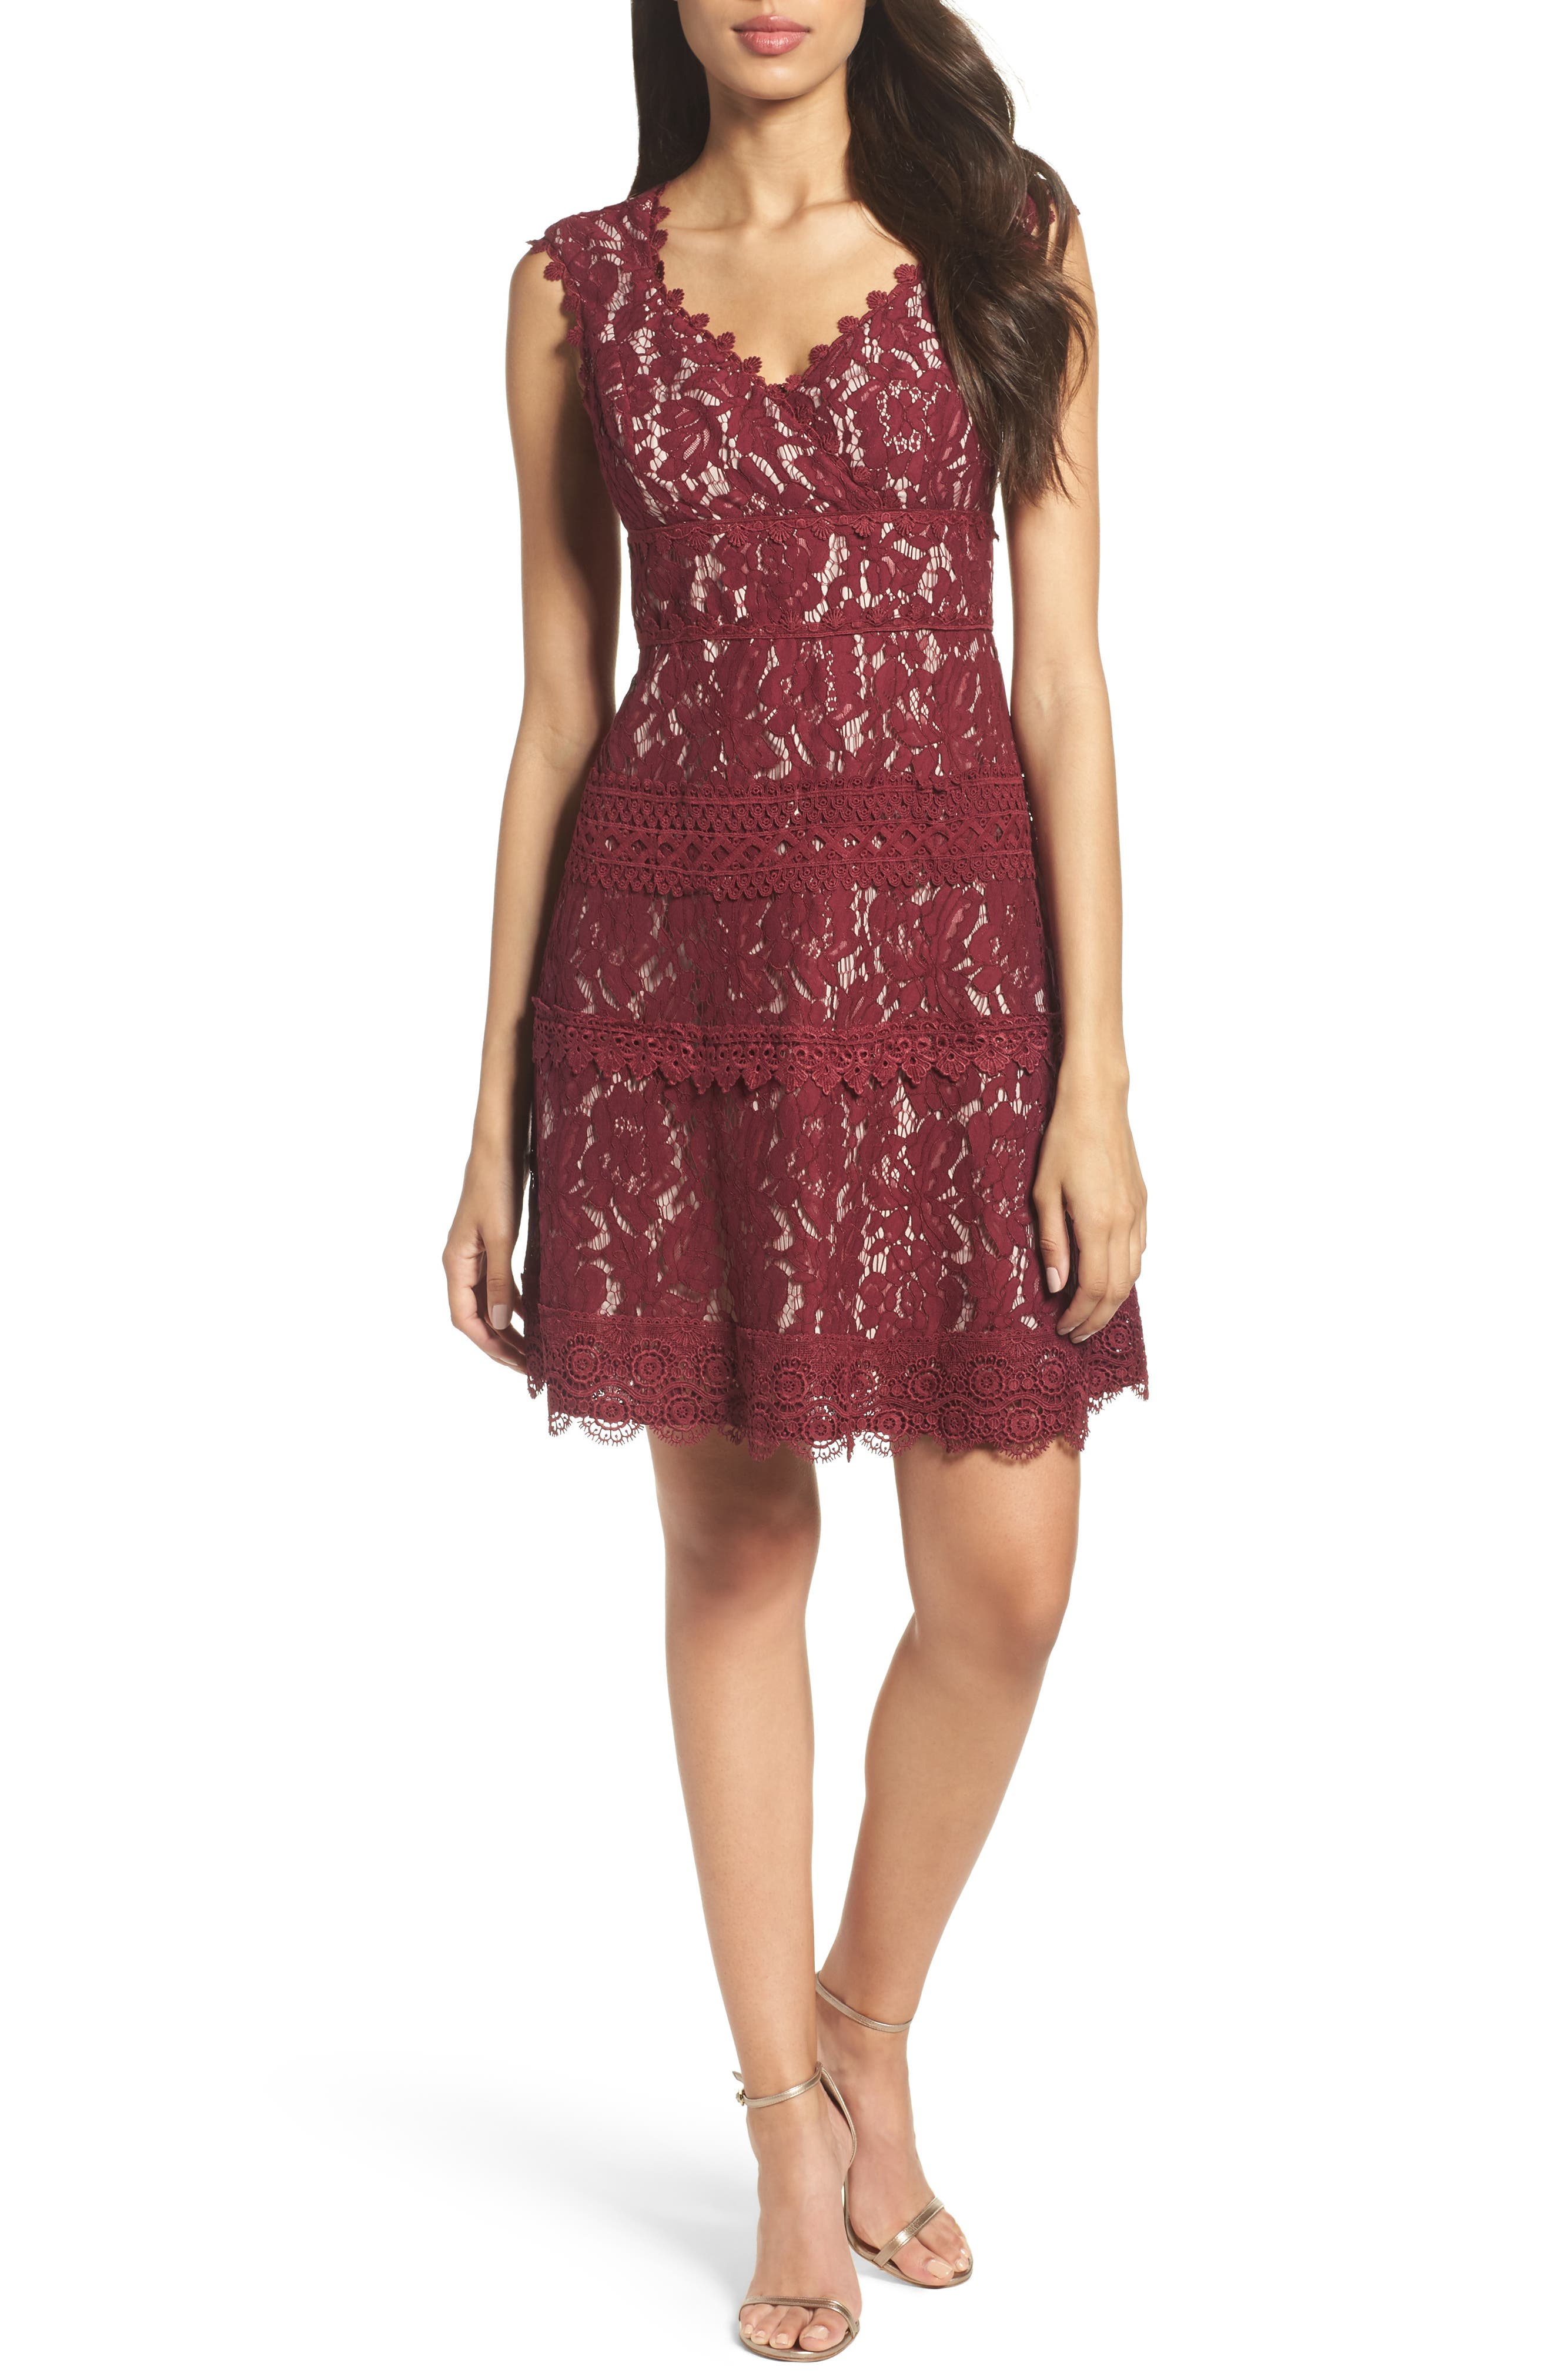 Main Image - Adrianna Papell Cynthia Lace Fit & Flare Dress